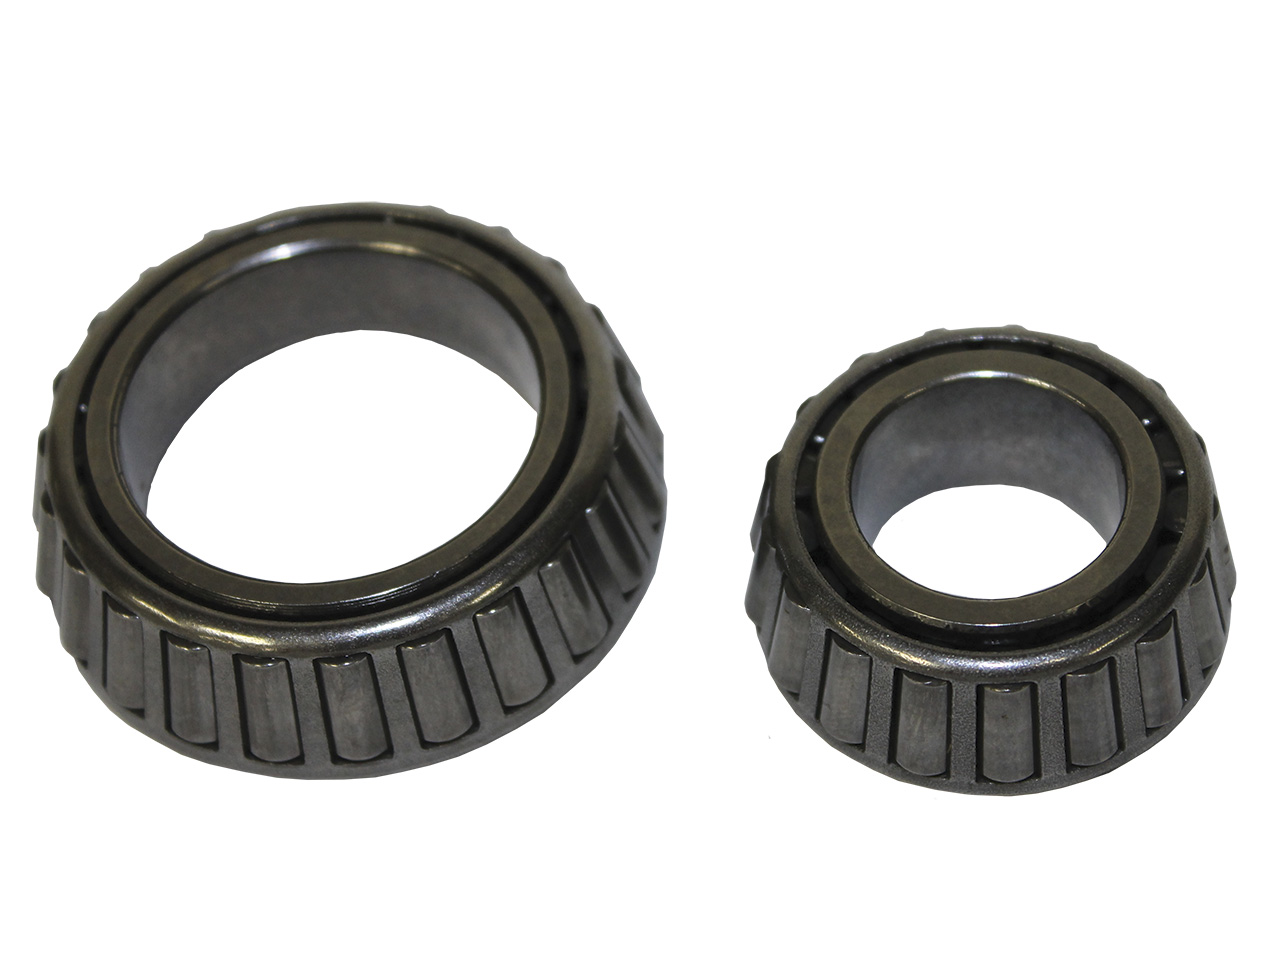 Picture of DRP Wide 5 Low Drag Bearing Kit